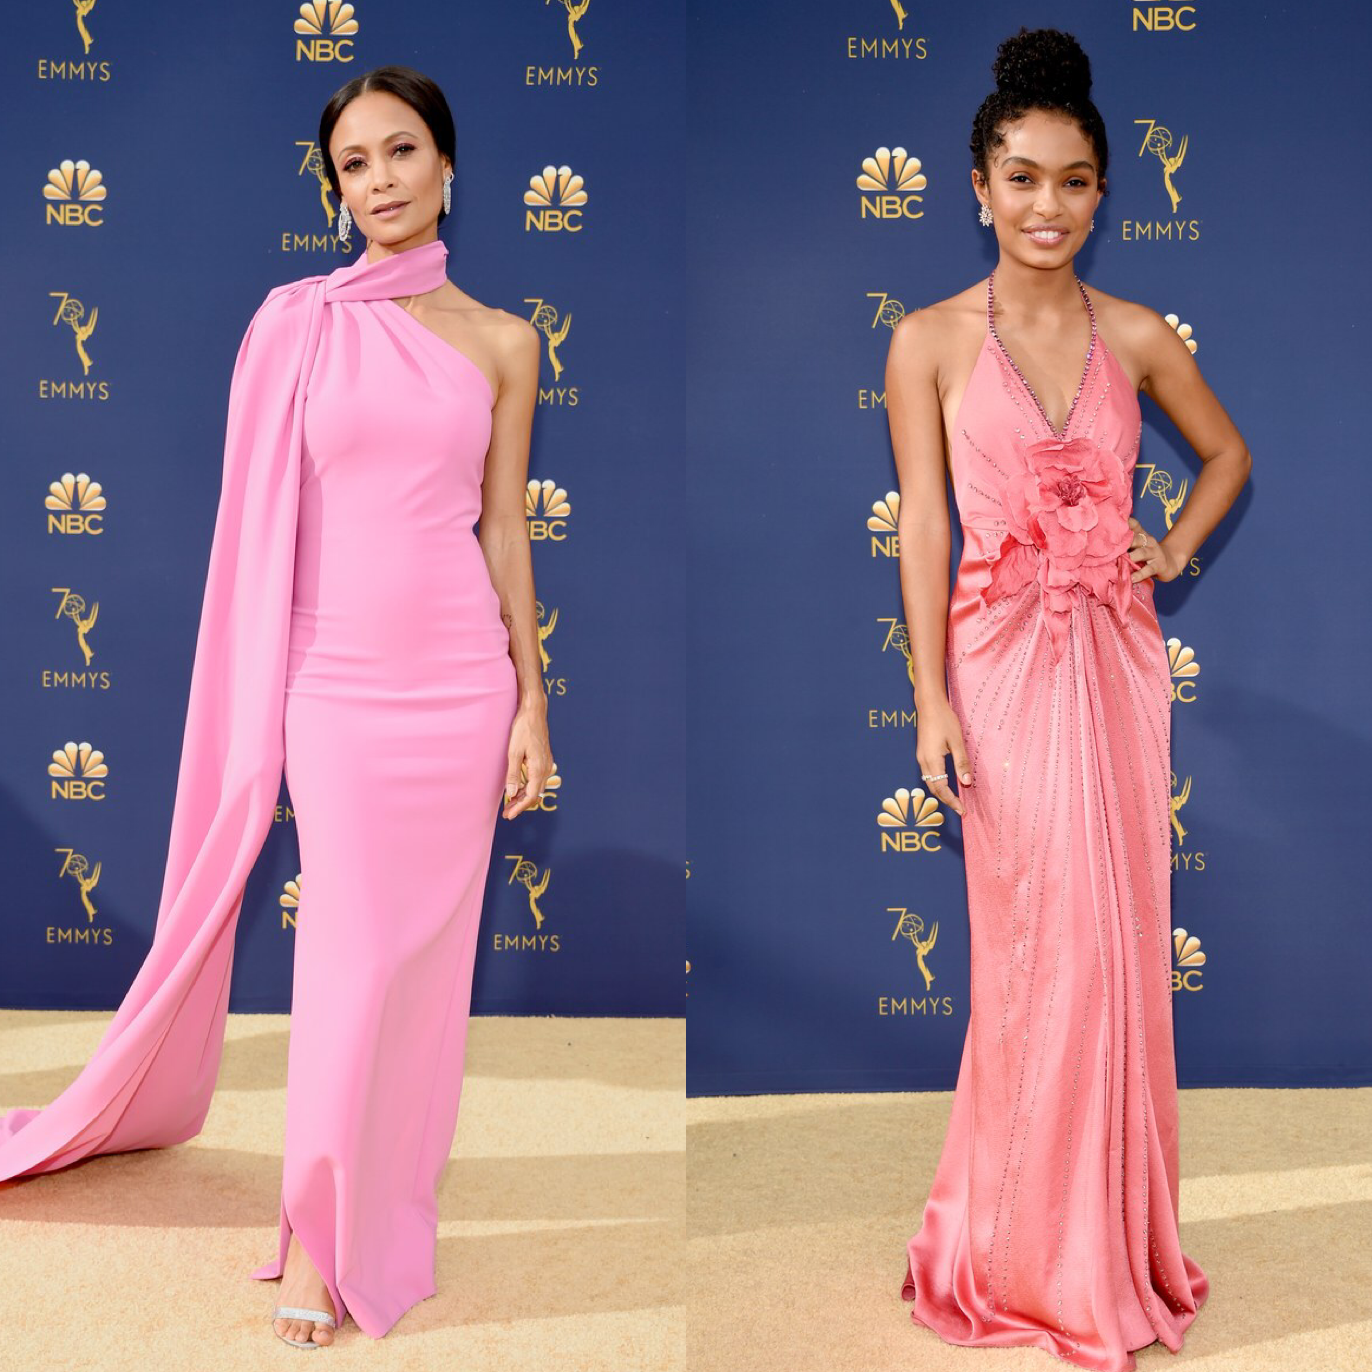 THE BEST LOOKS FROM THE 2018 EMMY AWARDS